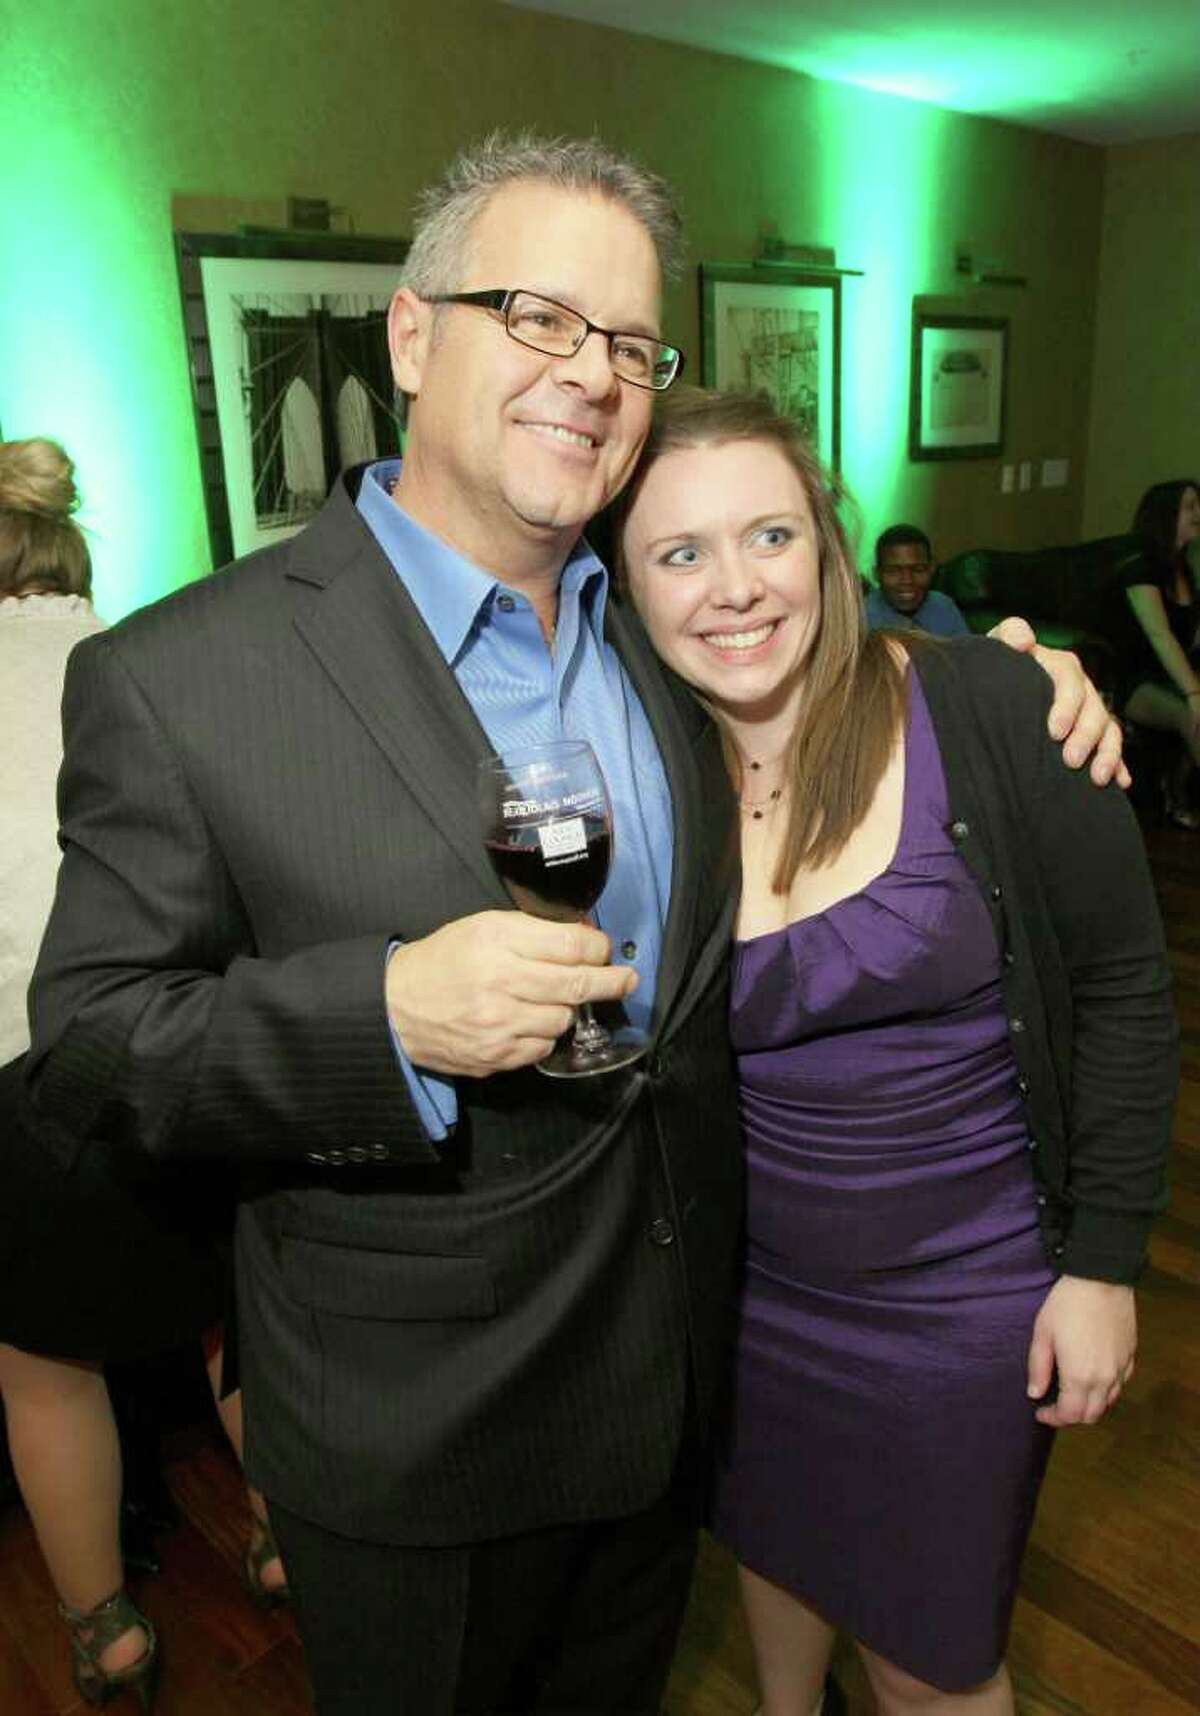 Were you seen at The 17th Annual Georges Duboeuf Beaujolais Nouveau Wine Celebration on Thursday, November 17, at the Hilton Garden Inn in Troy? The event helped raise money for the AIDS Council of Northeastern New York.